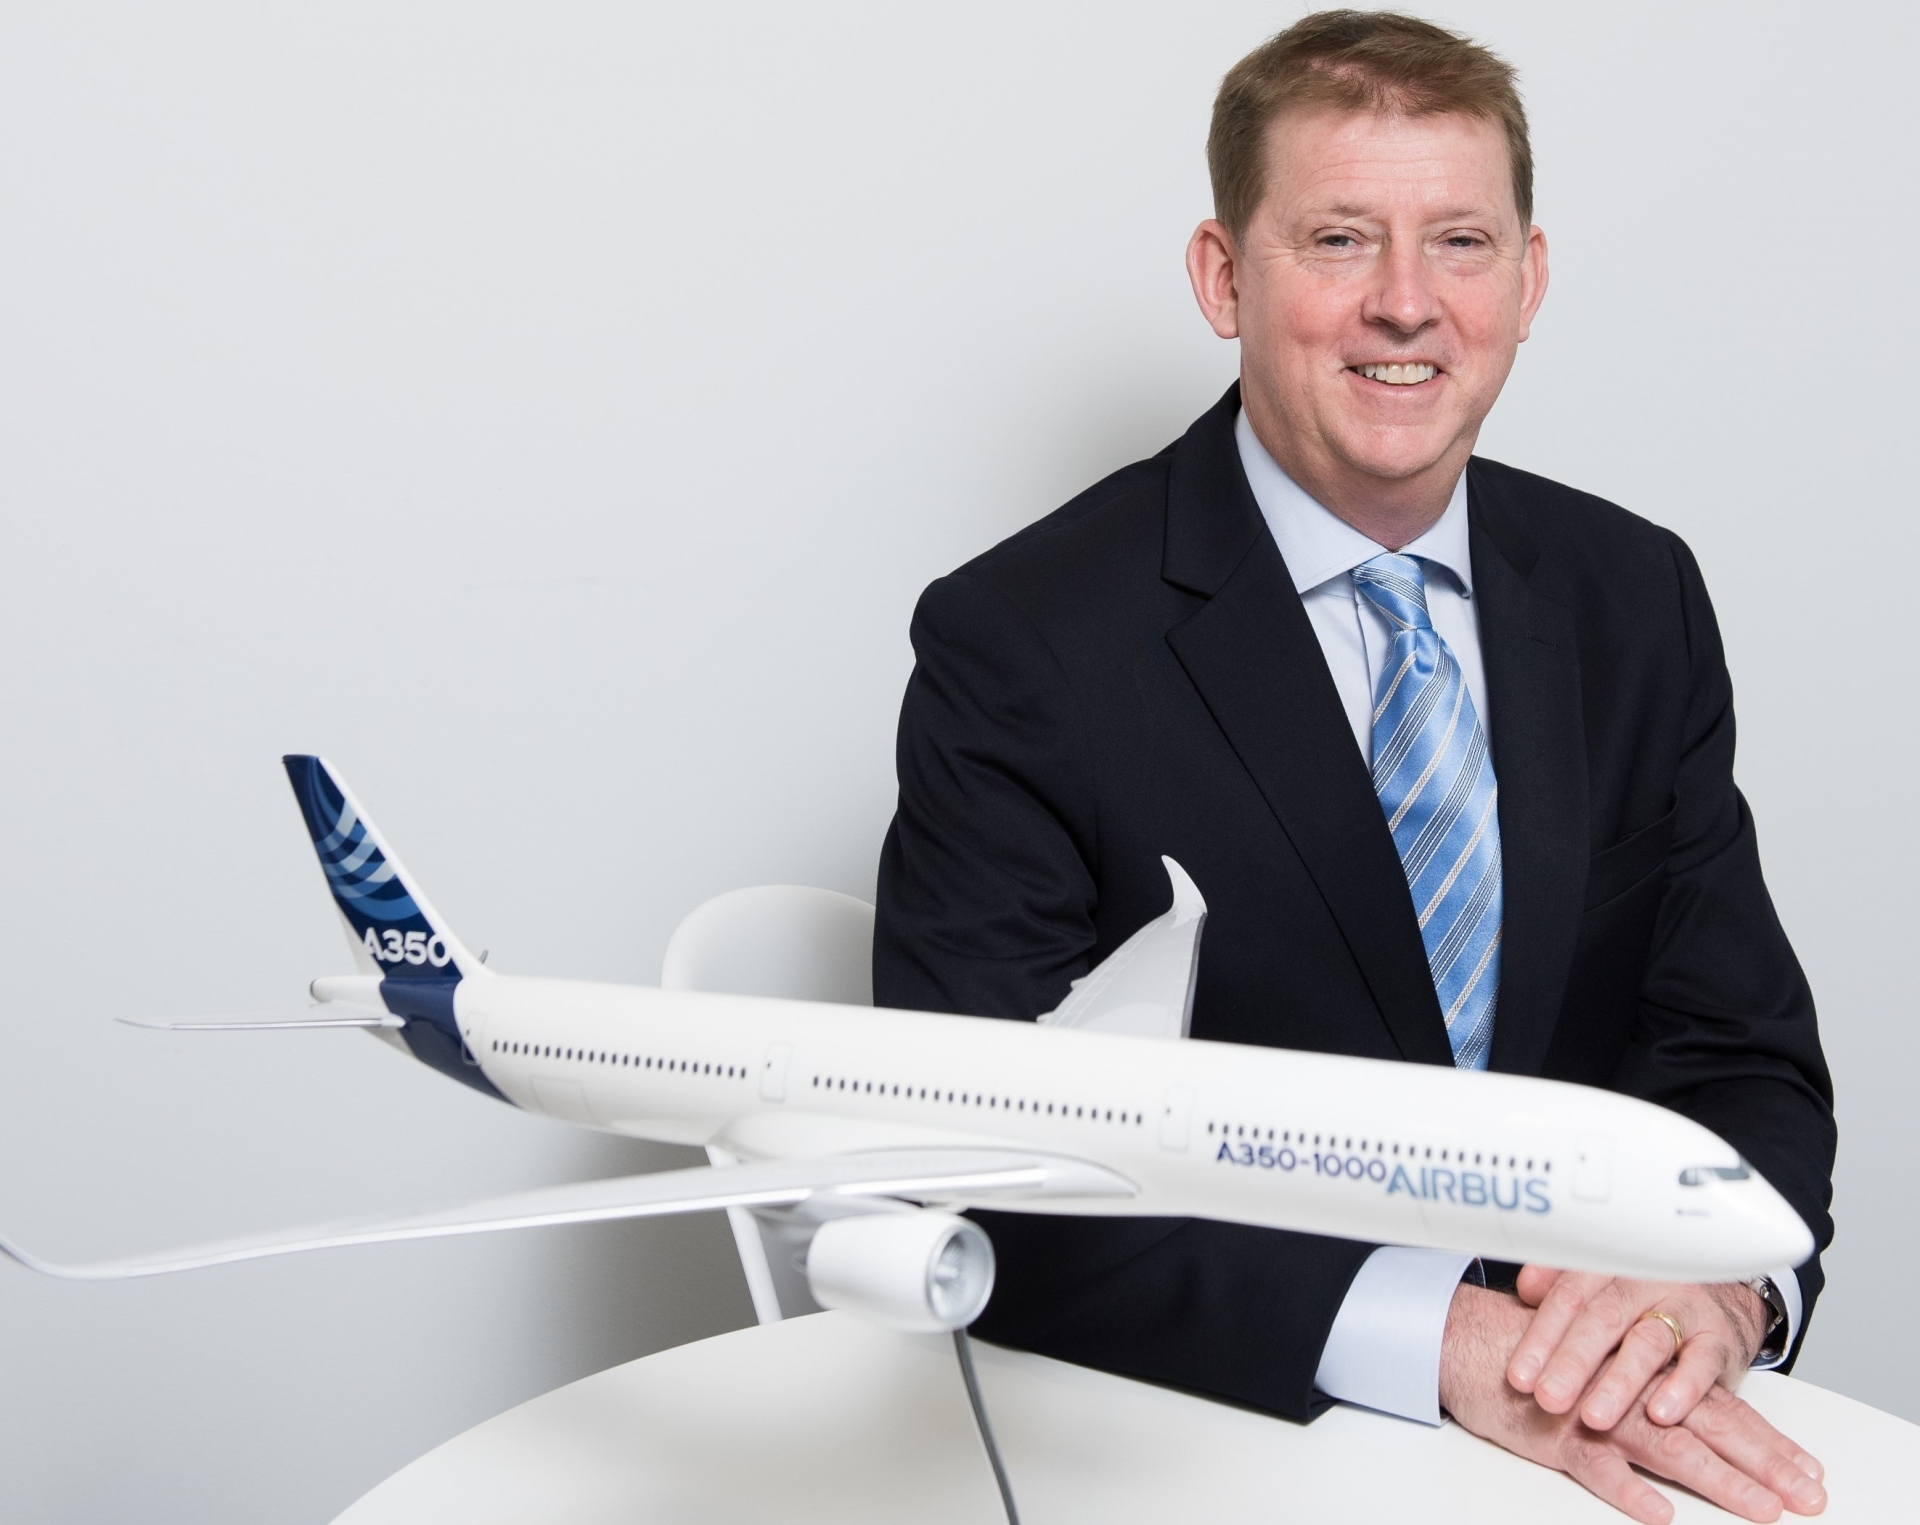 Chris Drewer assumes role of senior vice president SEA for Airbus Commercial Aircraft